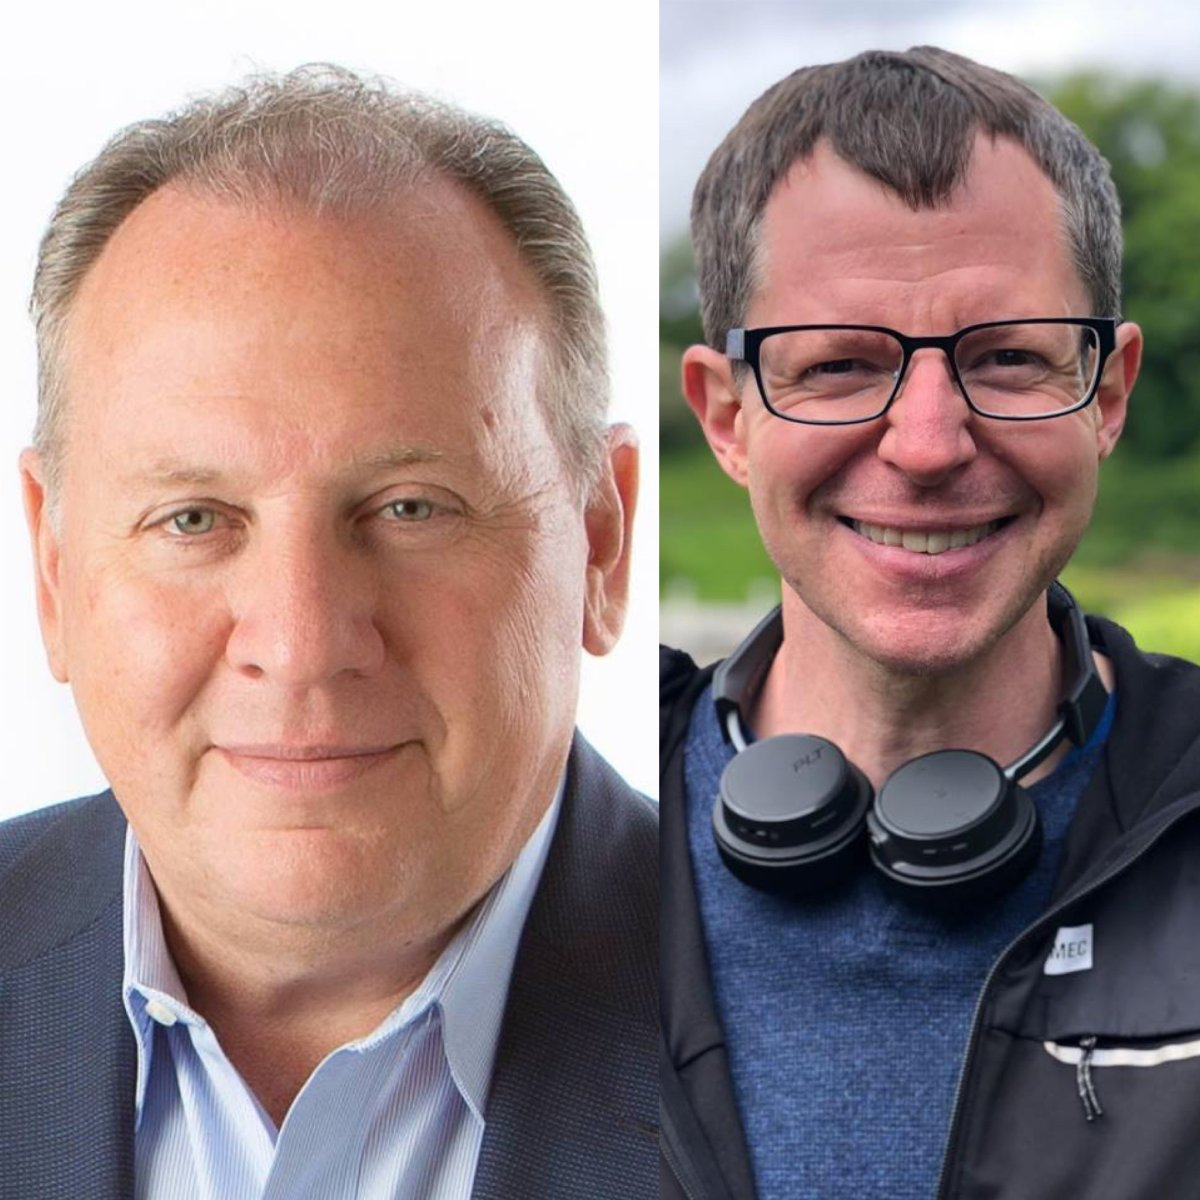 """Shawn Adamsson (right), a community activist and ardent supporter of rapid transit, published an apology Saturday night for a """"satirical"""" website he created in December 2017 to criticize Paul Paolatto (left), who finished second in last year's municipal election."""